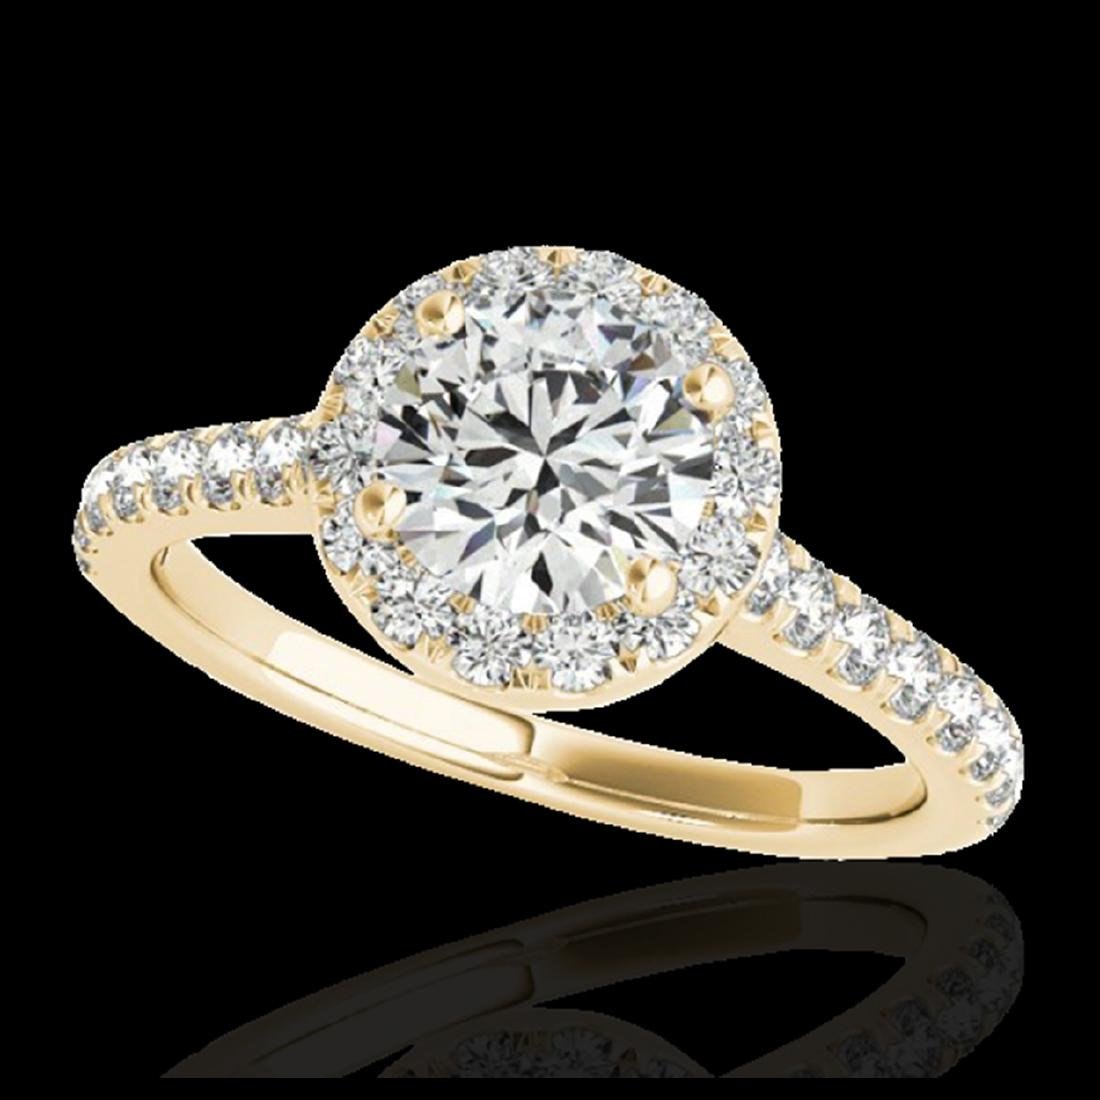 1.40 ctw H-SI/I Diamond Solitaire Halo Ring 10K Yellow